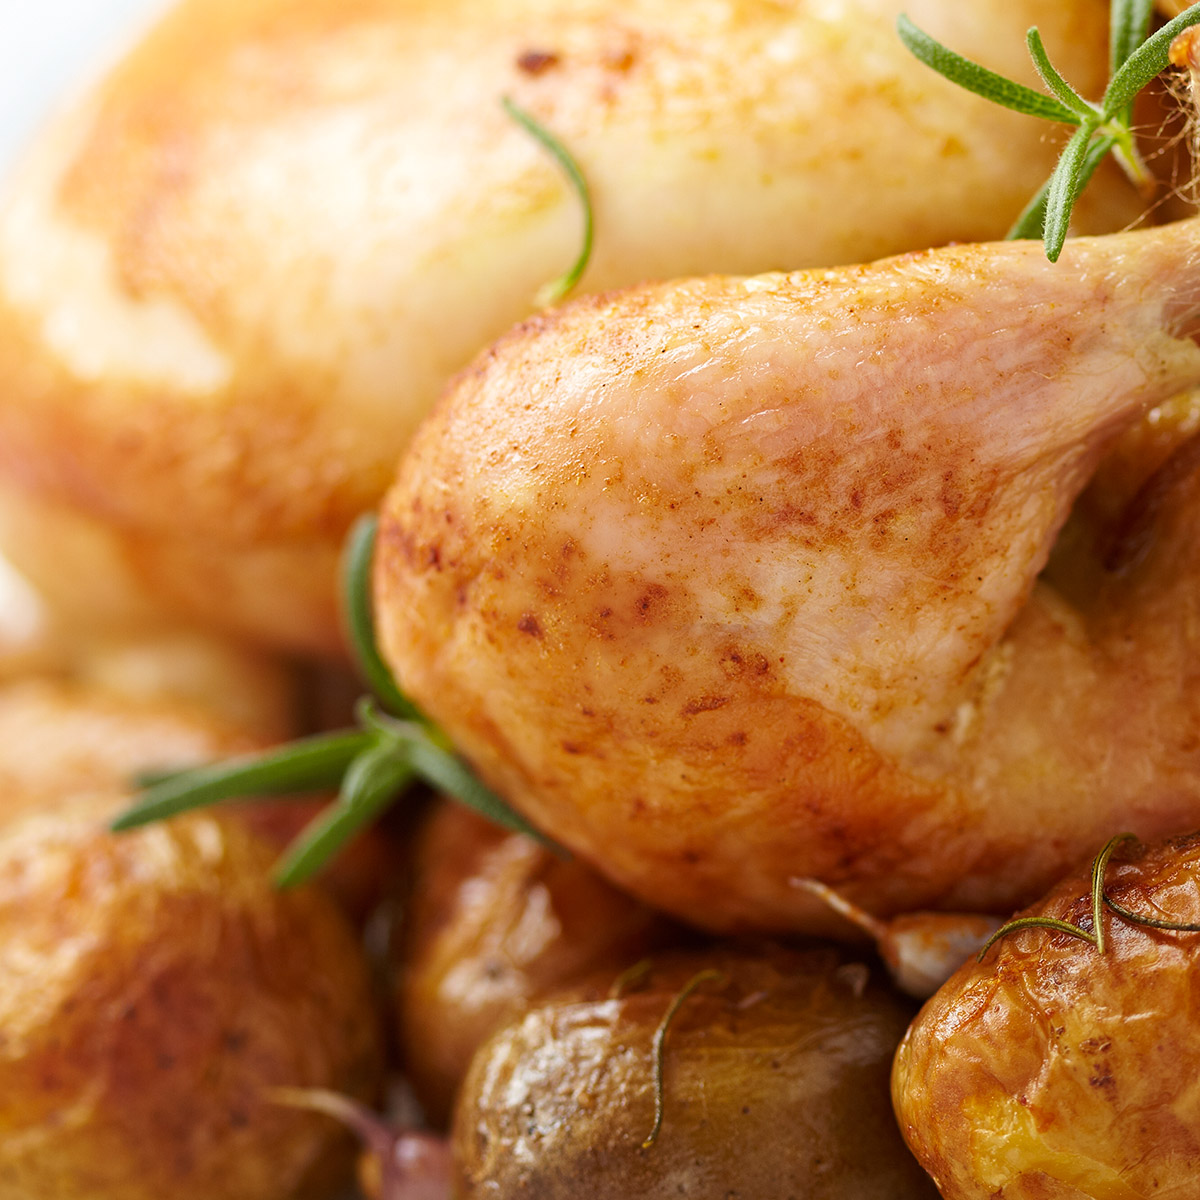 White Blend Food suggestion - Roast Chicken